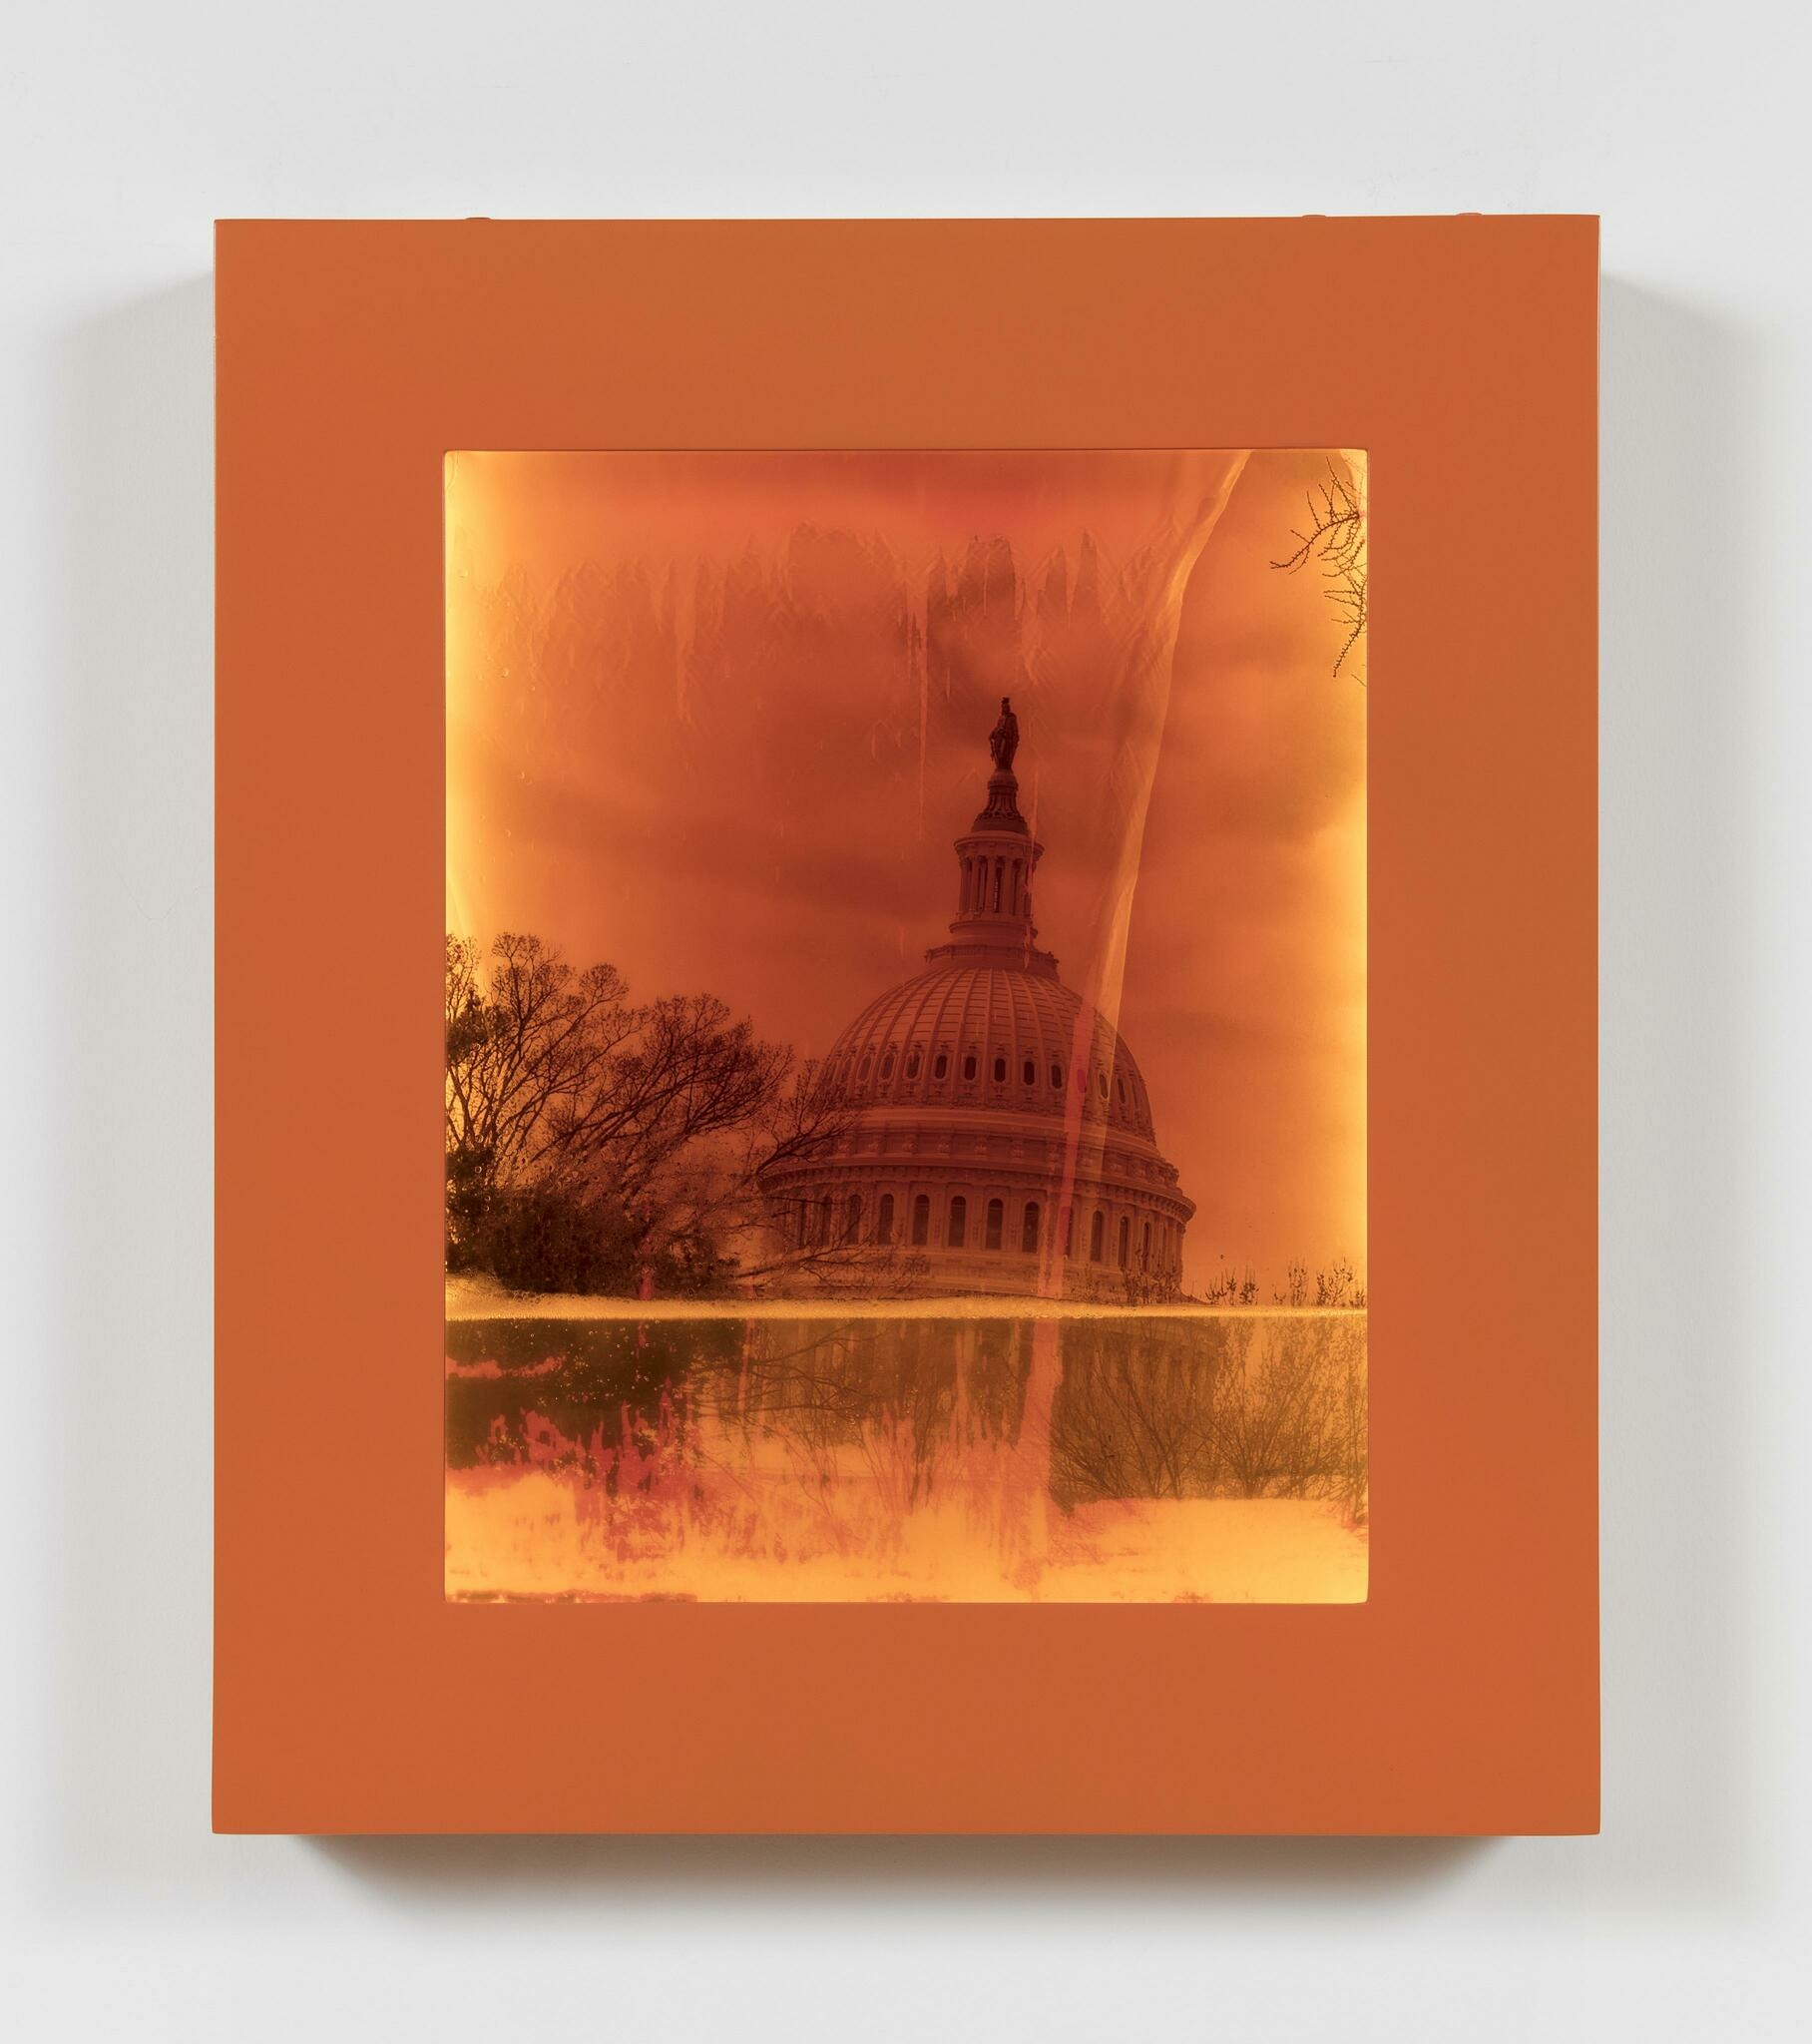 Photo of the United States Capitol building contained within an orange frame filling with water